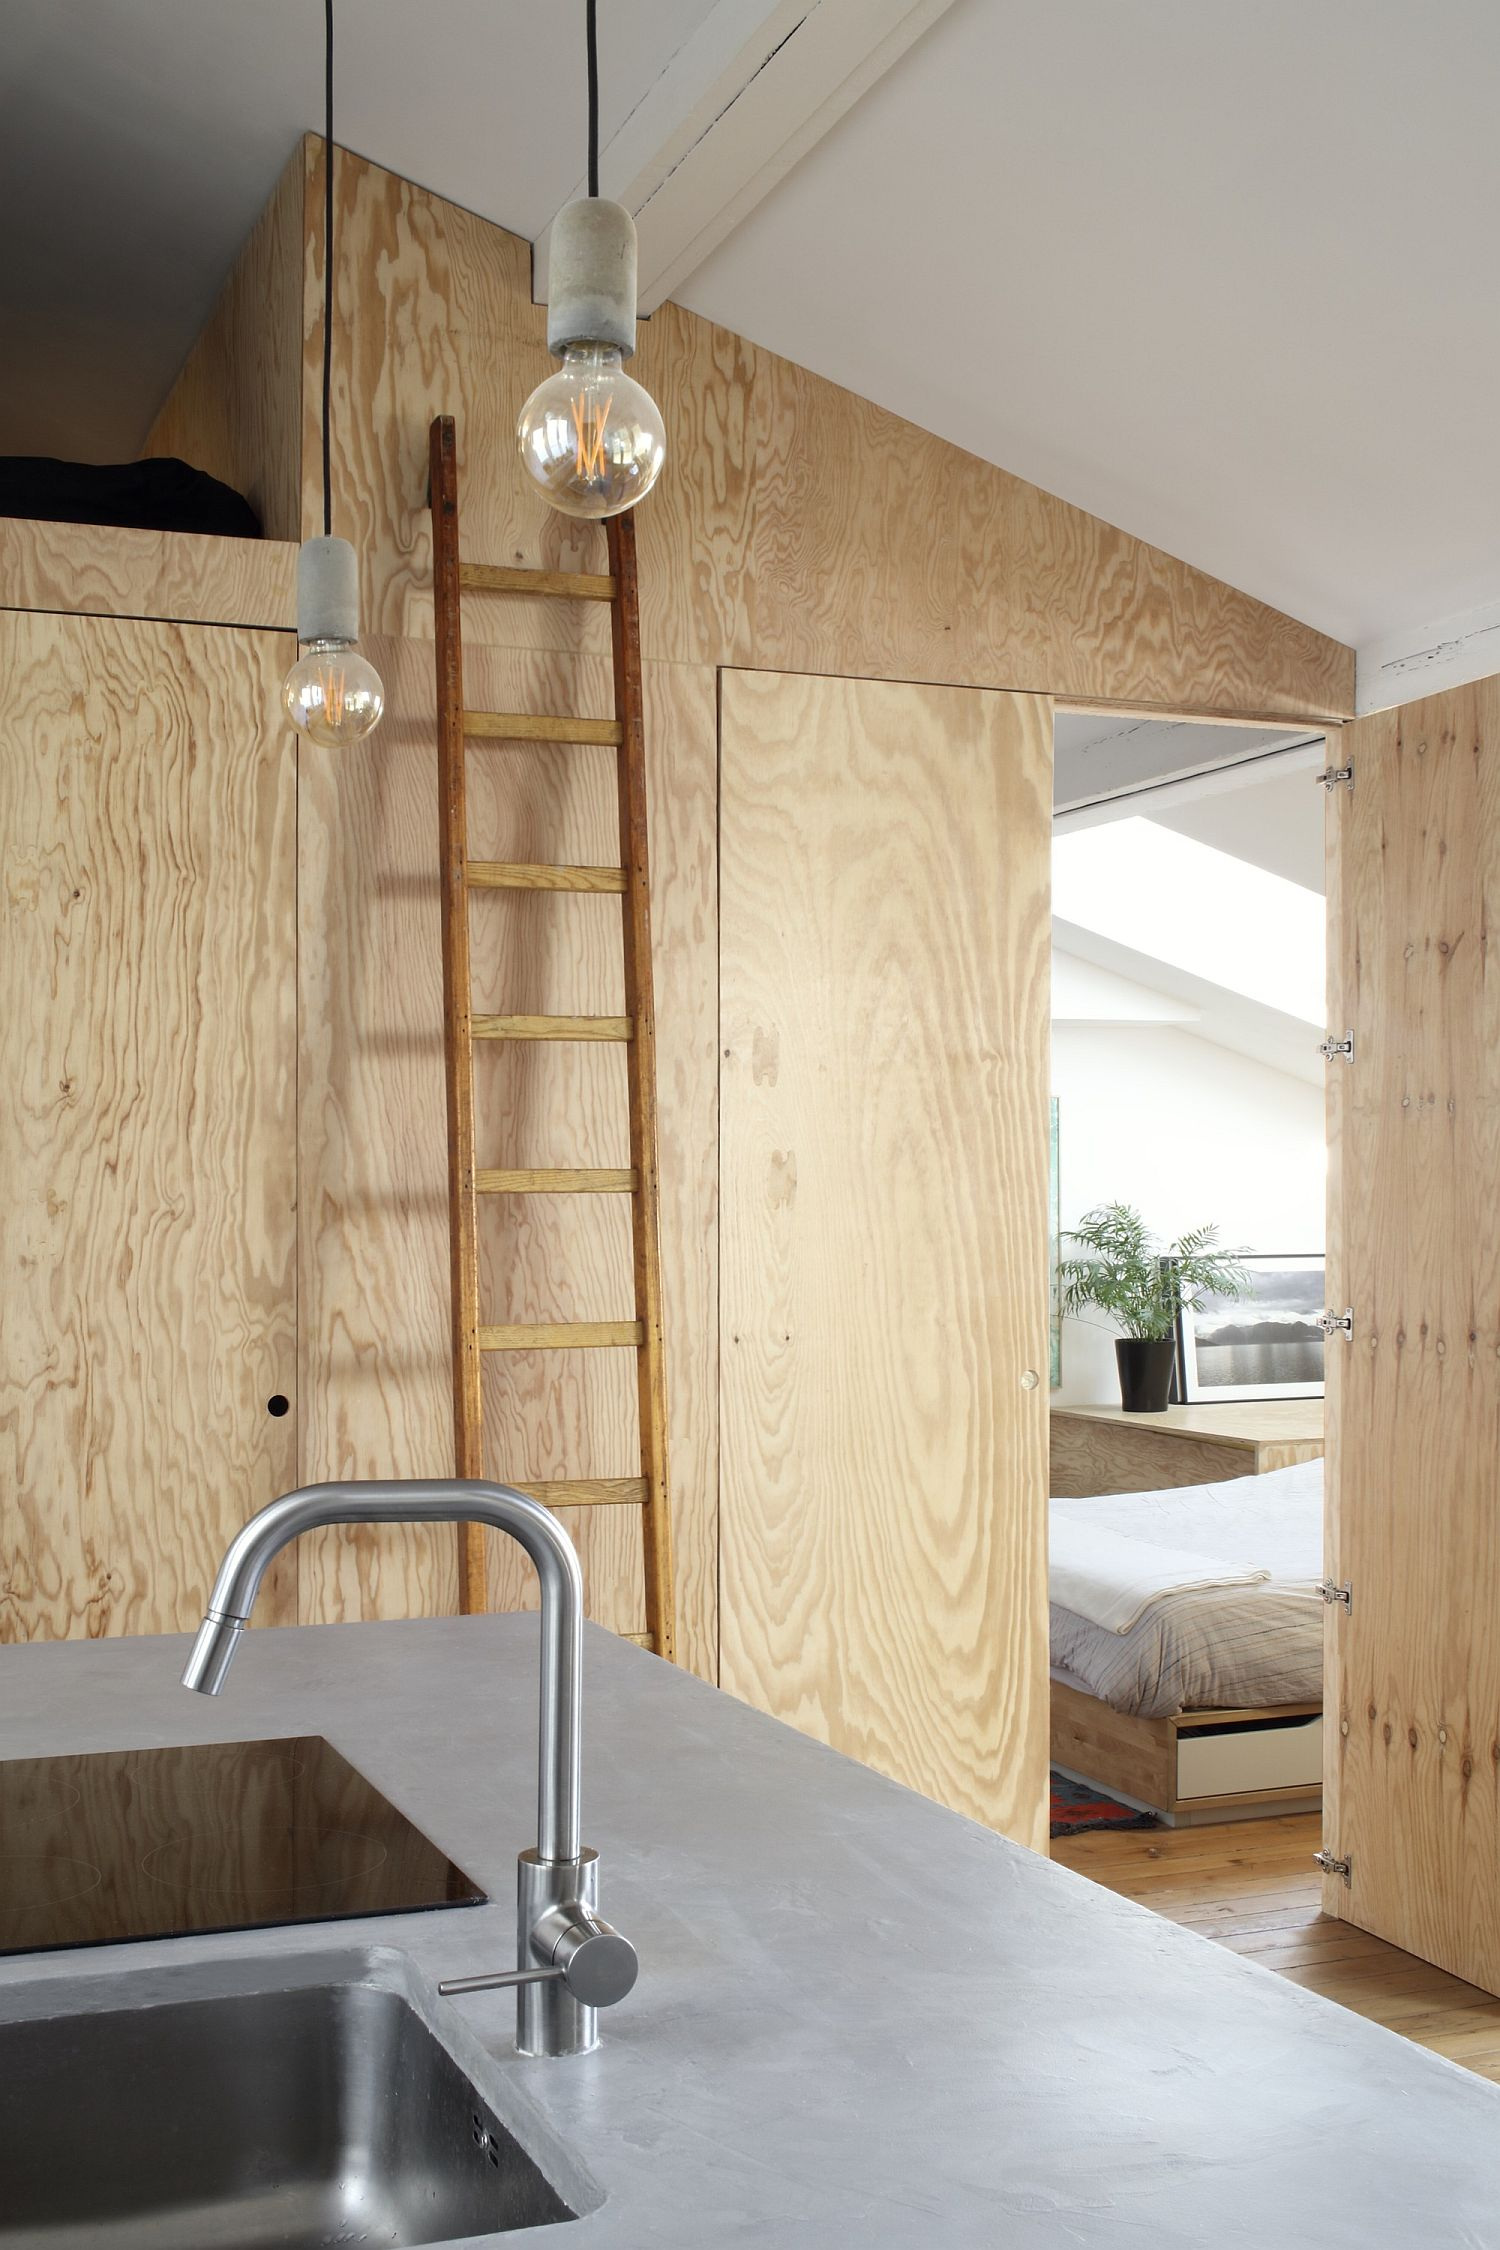 Utilizing-the-vertical-space-in-the-single-bedroom-apartment-in-style-43579